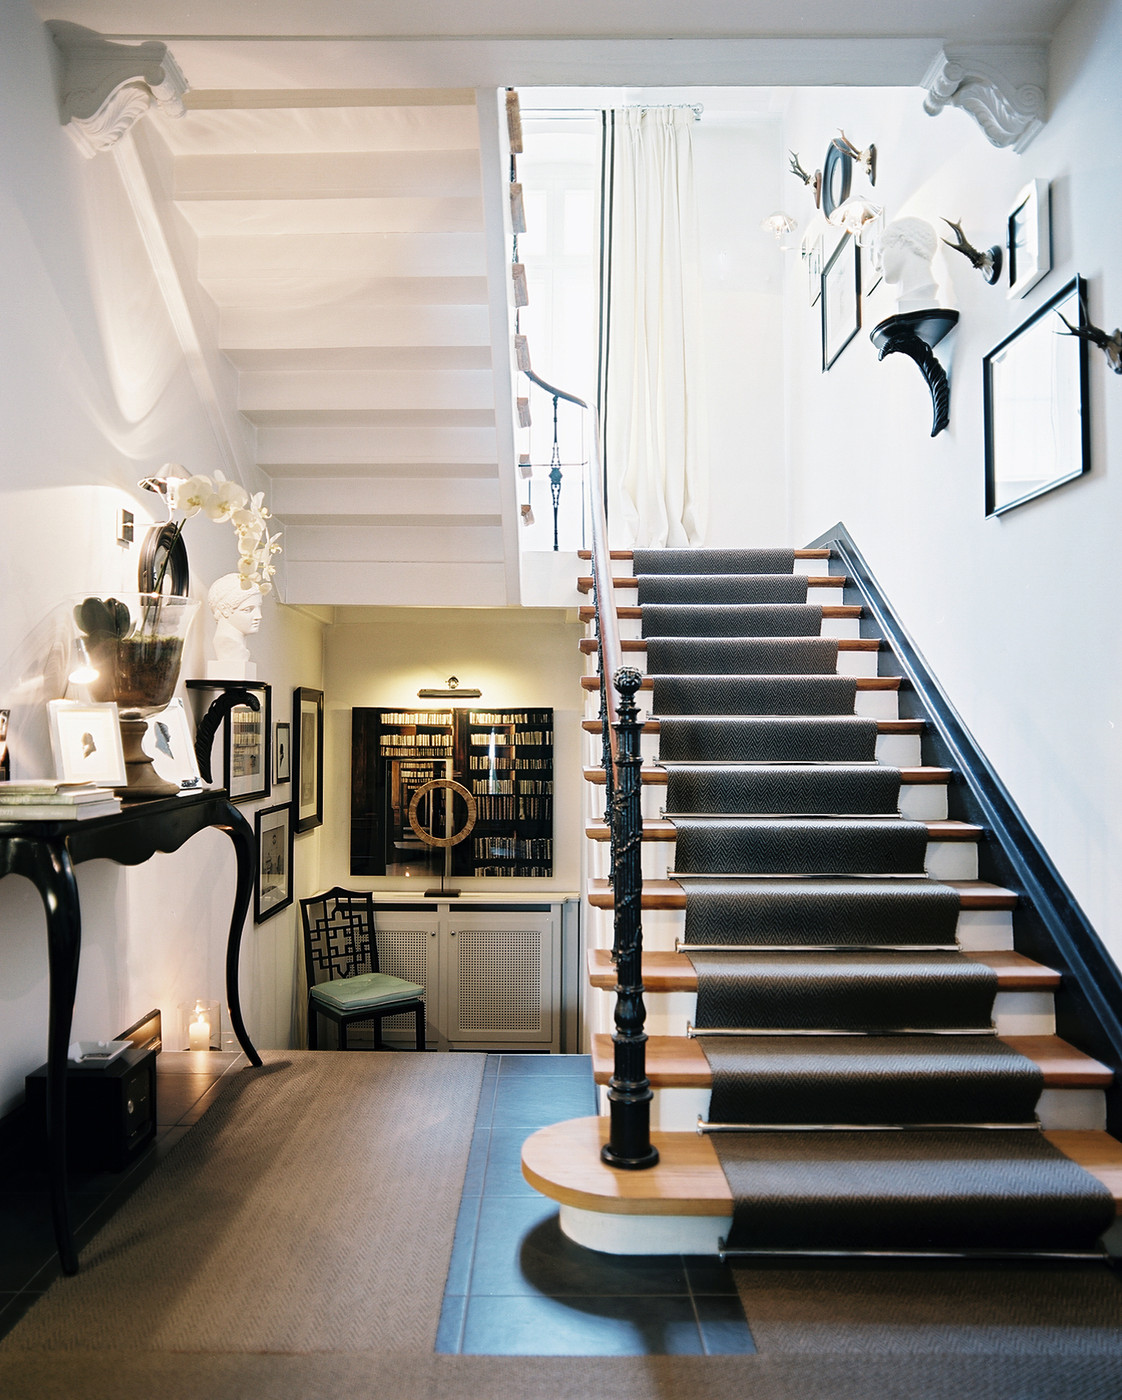 17 Great Traditional Staircases Design Ideas: Michele Bonan Photos, Design, Ideas, Remodel, And Decor